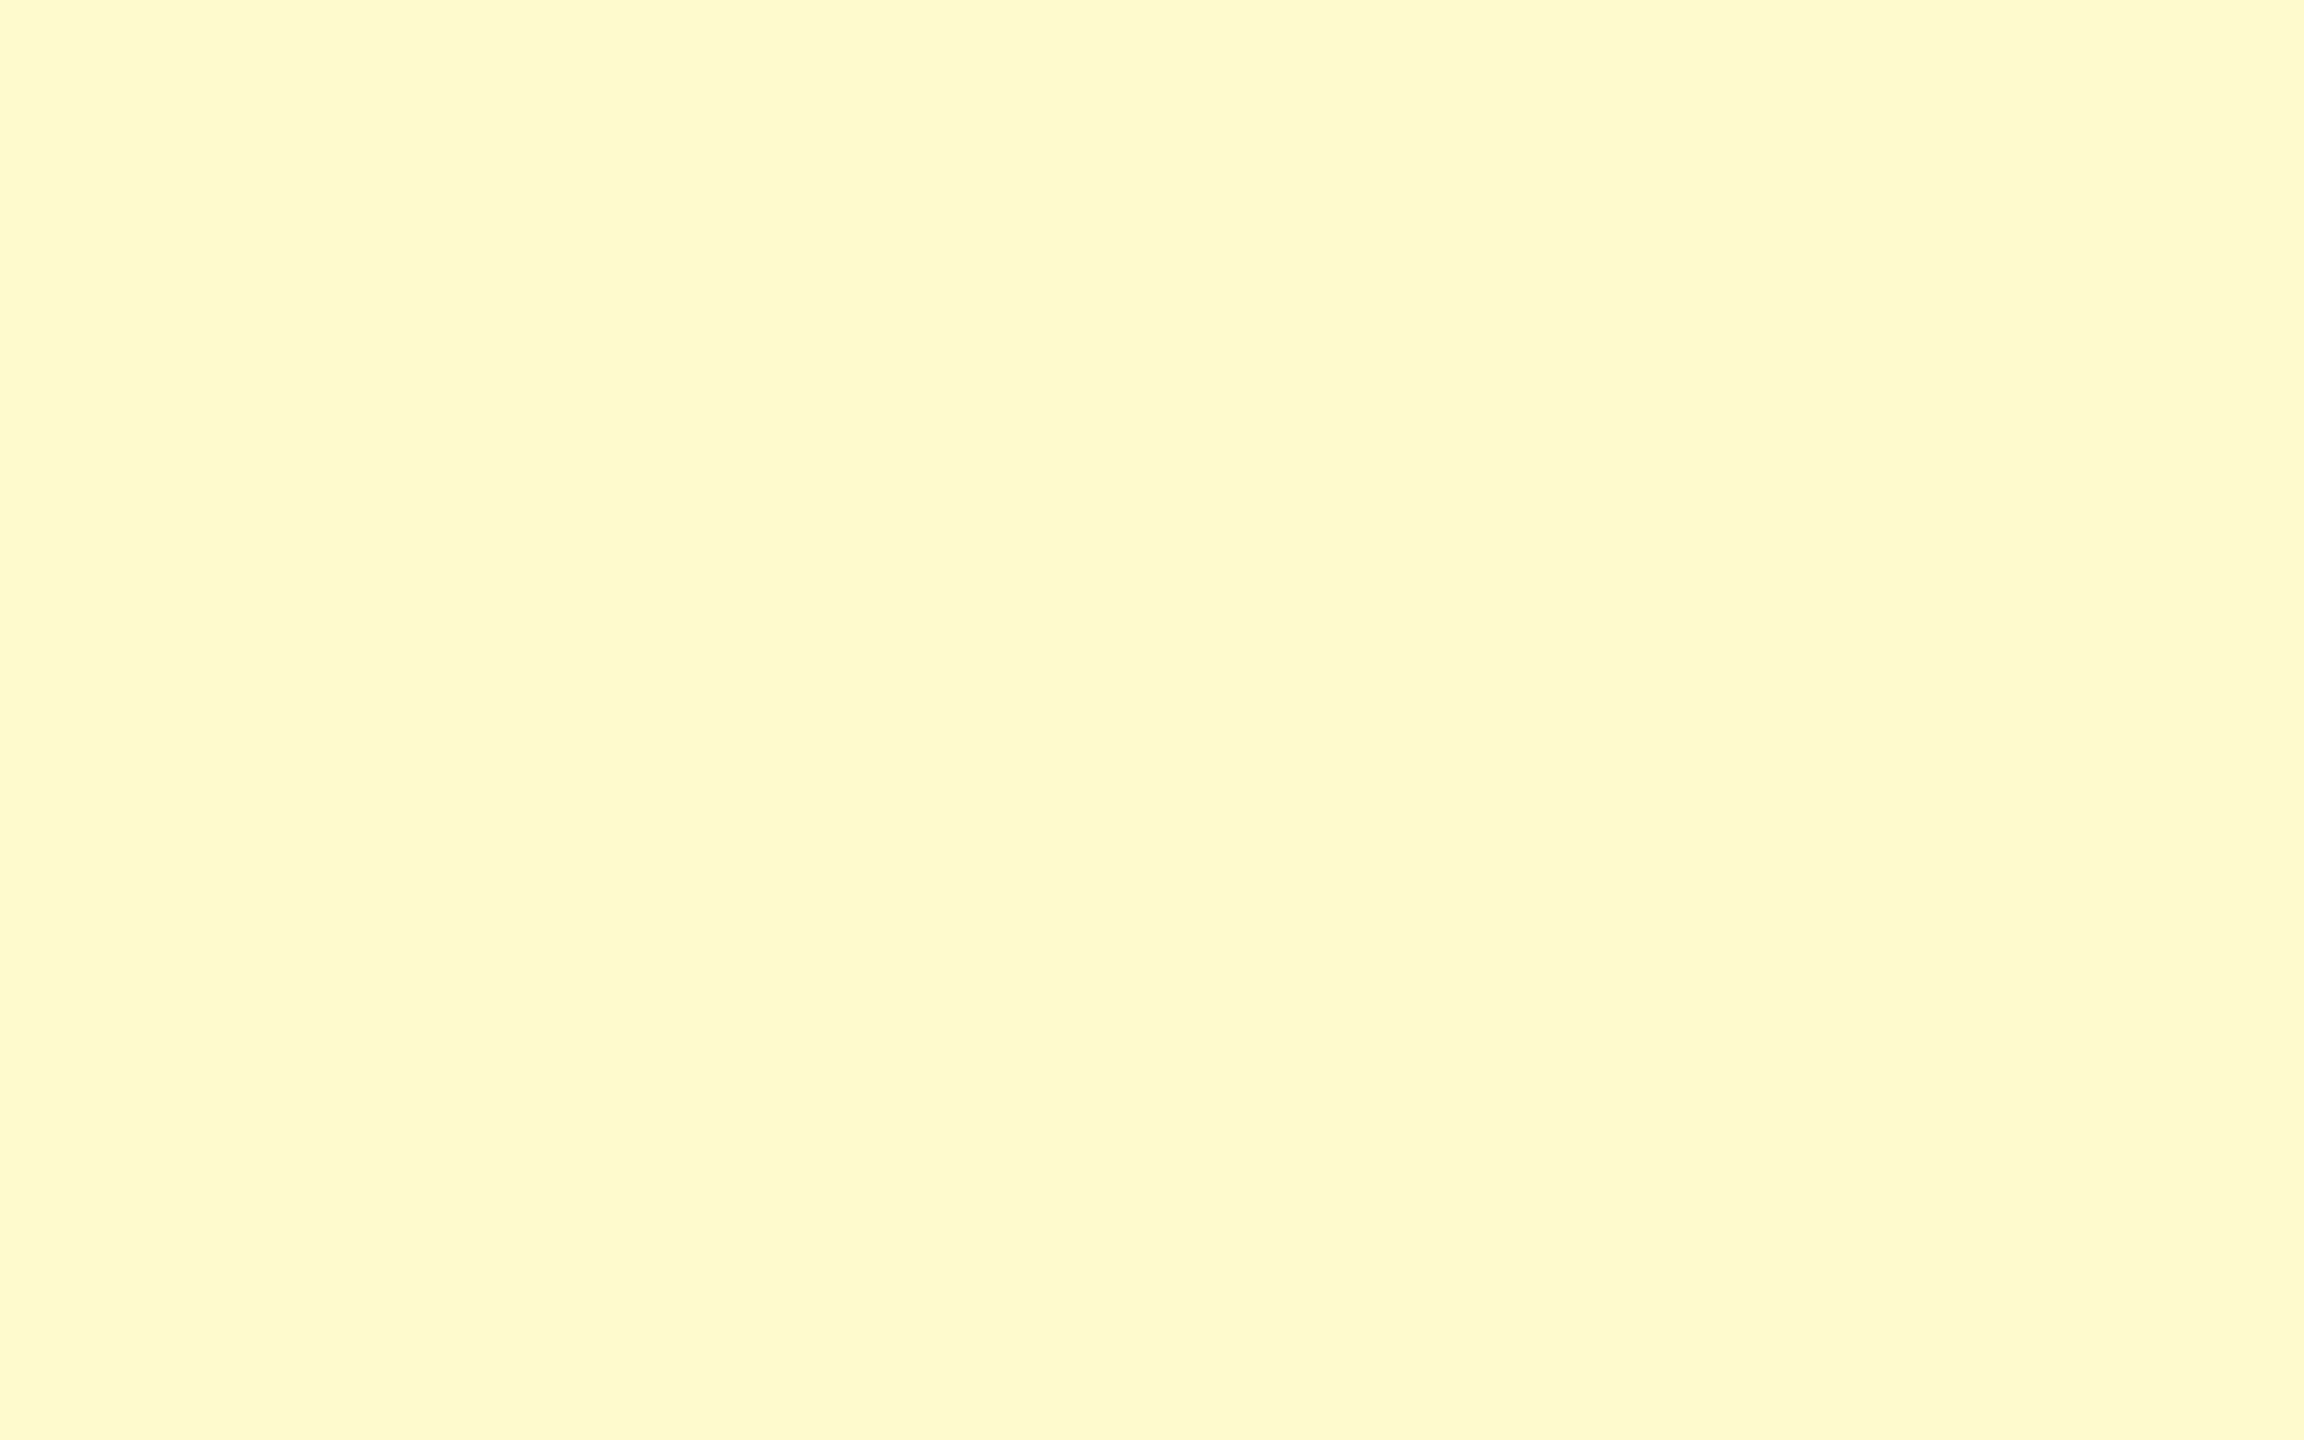 2304x1440 Lemon Chiffon Solid Color Background